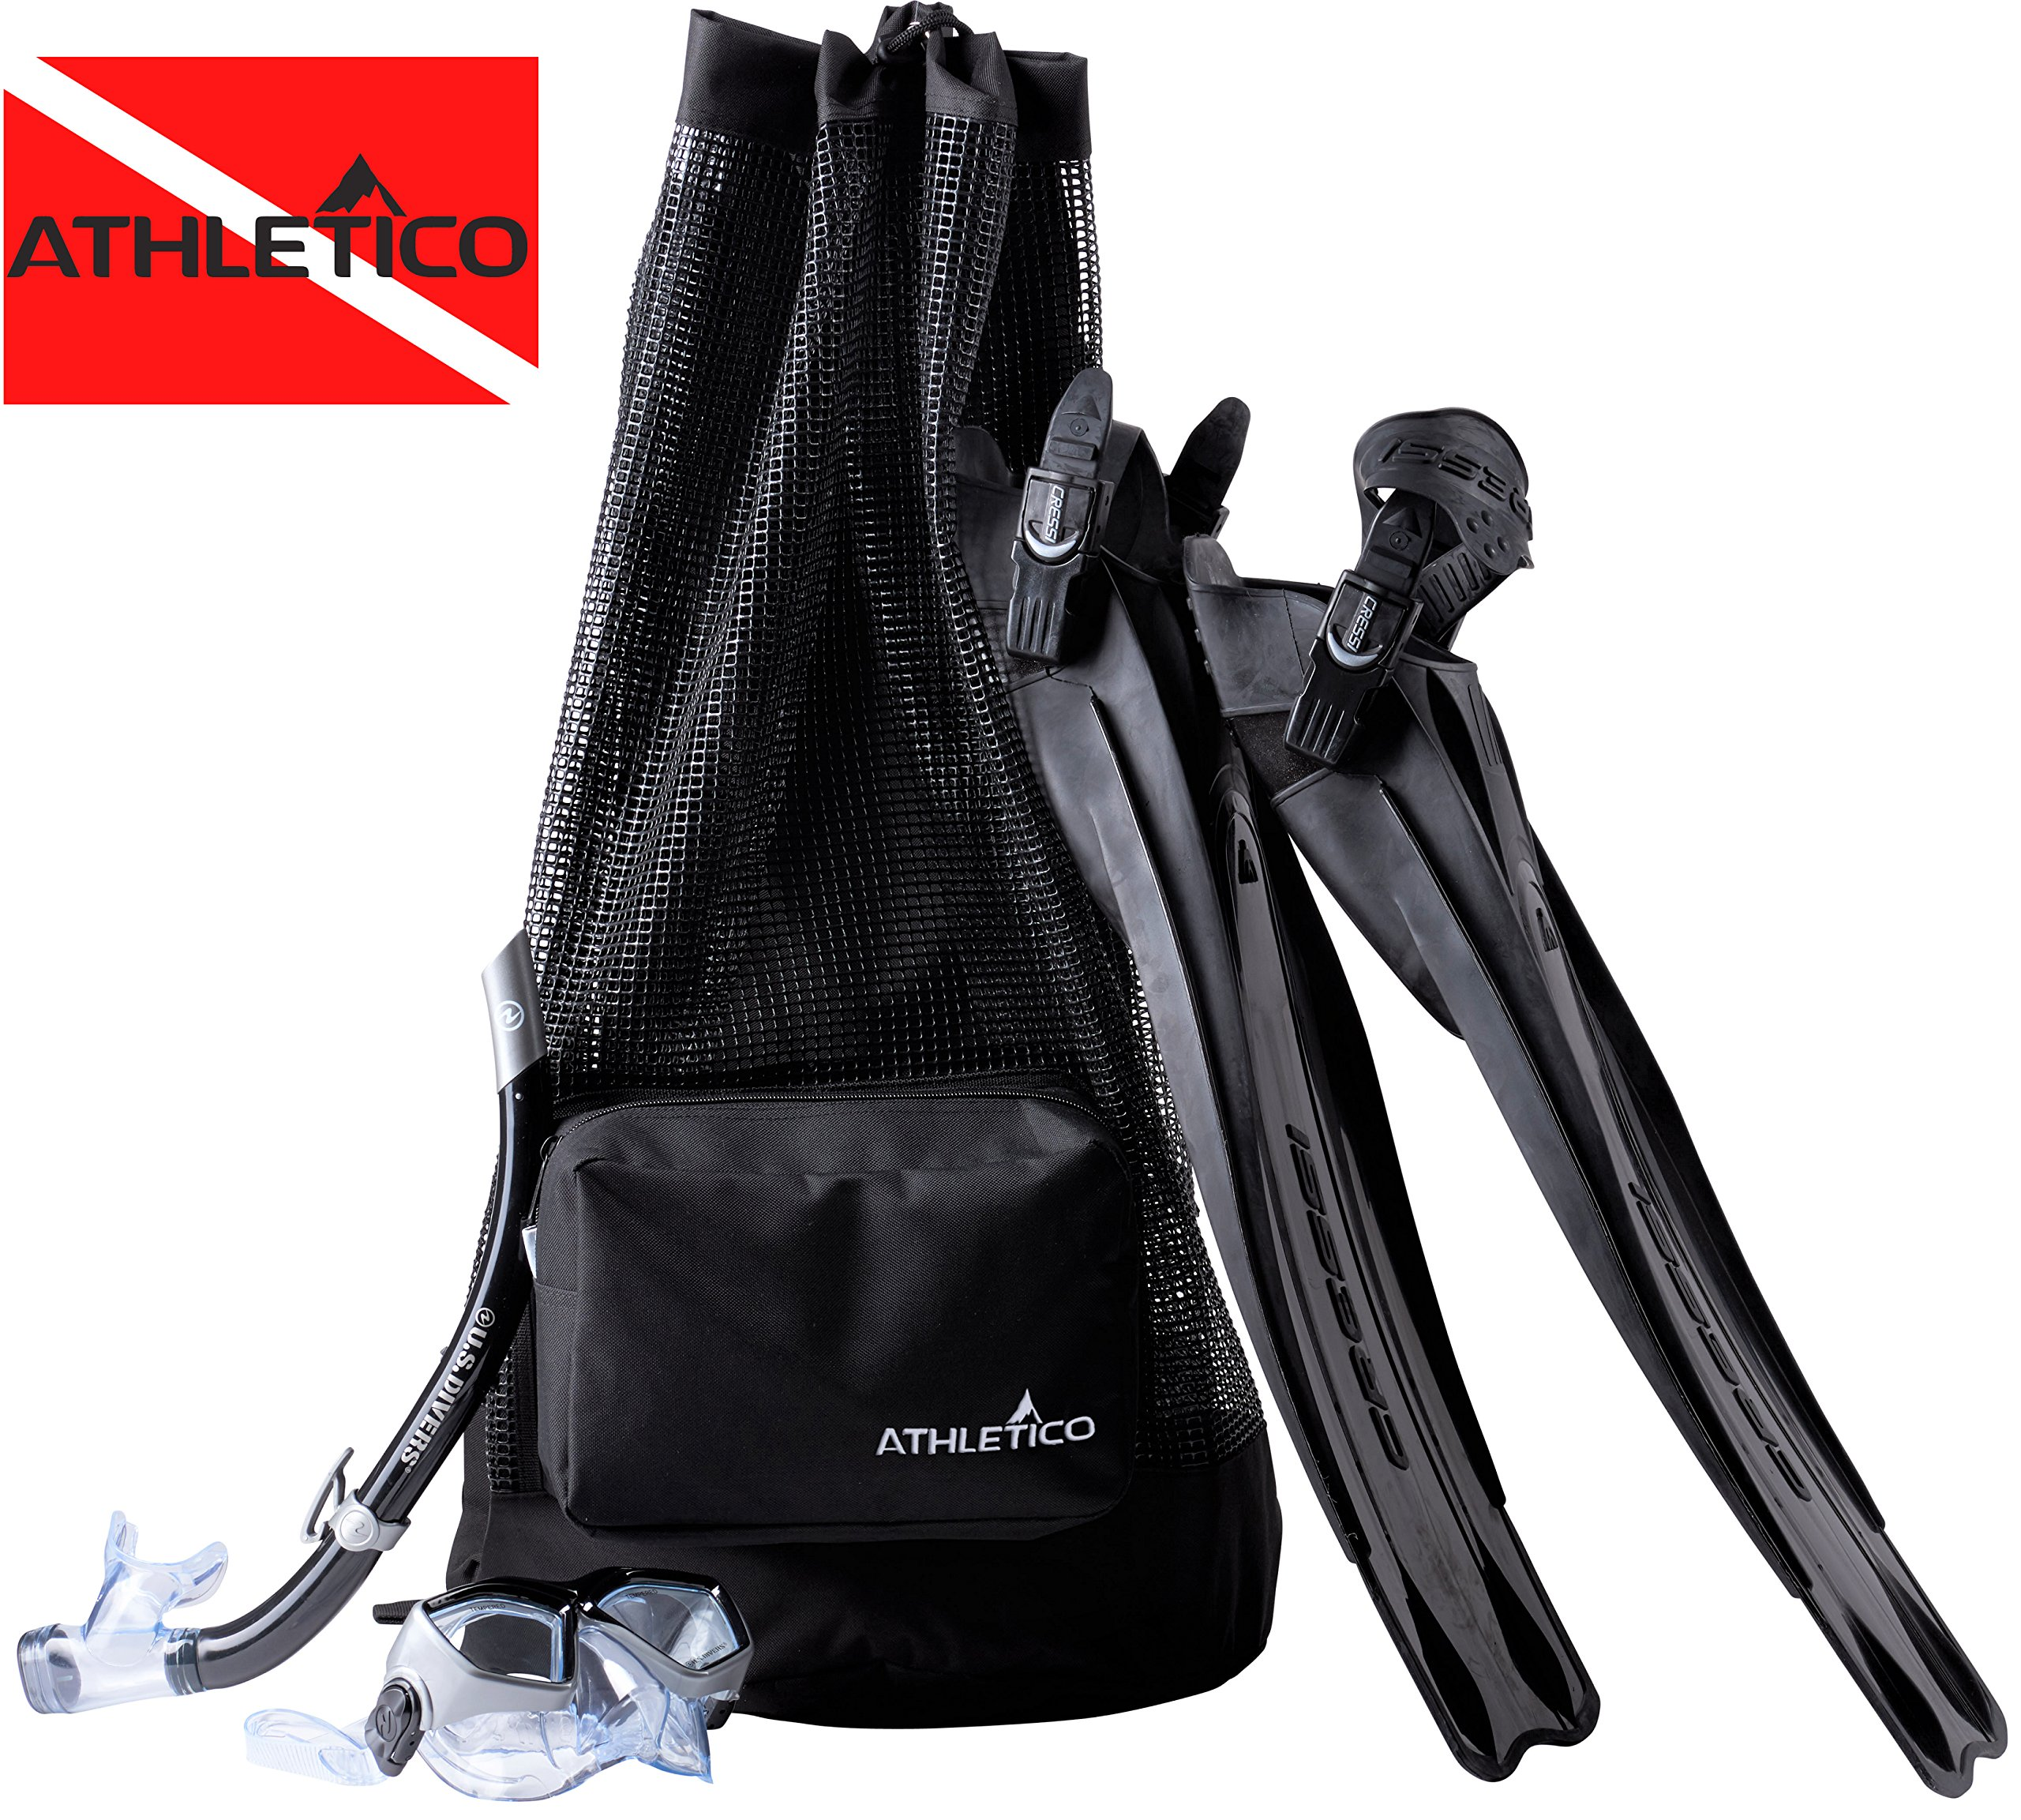 Athletico Scuba Diving Bag - XL Mesh Travel Backpack for Scuba Diving and Snorkeling Gear & Equipment - Dry Bag Holds Mask, Fins, Snorkel, and More (Black) by Athletico